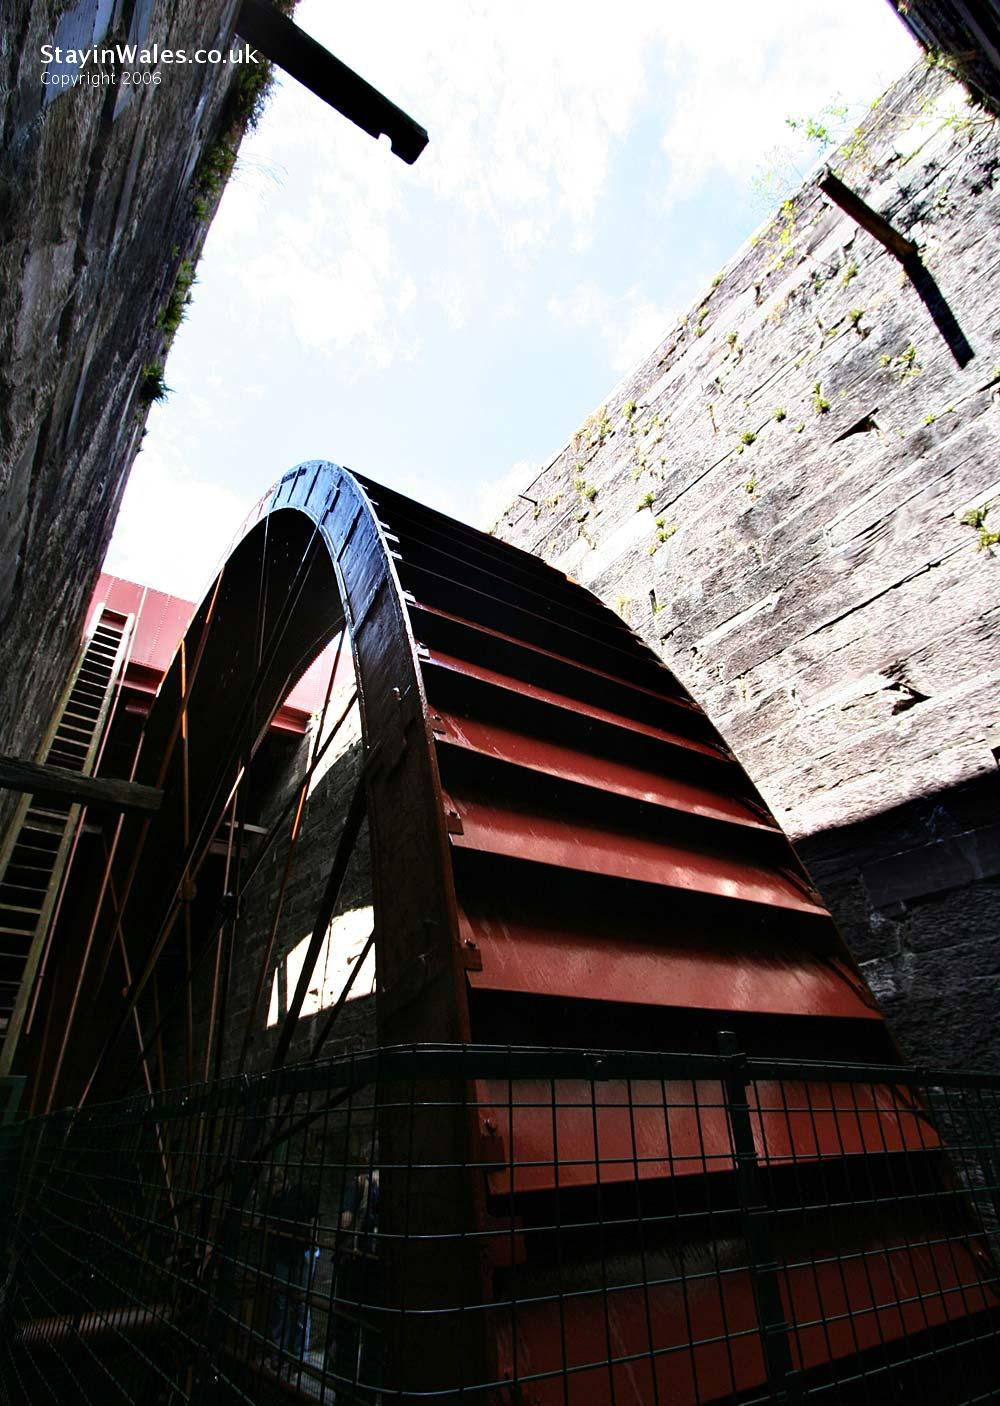 Water wheel at the National Slate Museum